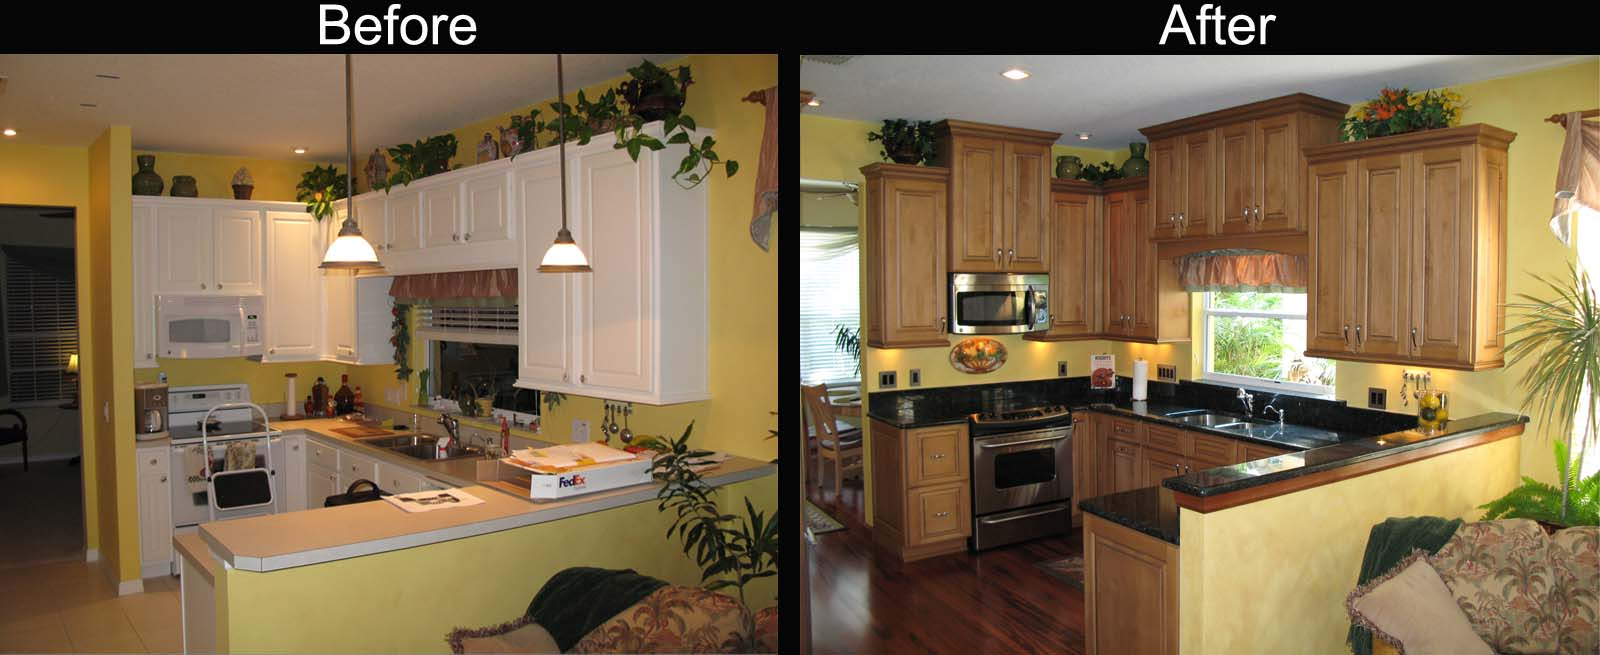 Kitchen decor kitchen remodel before and after for Kitchen remodel ideas before and after